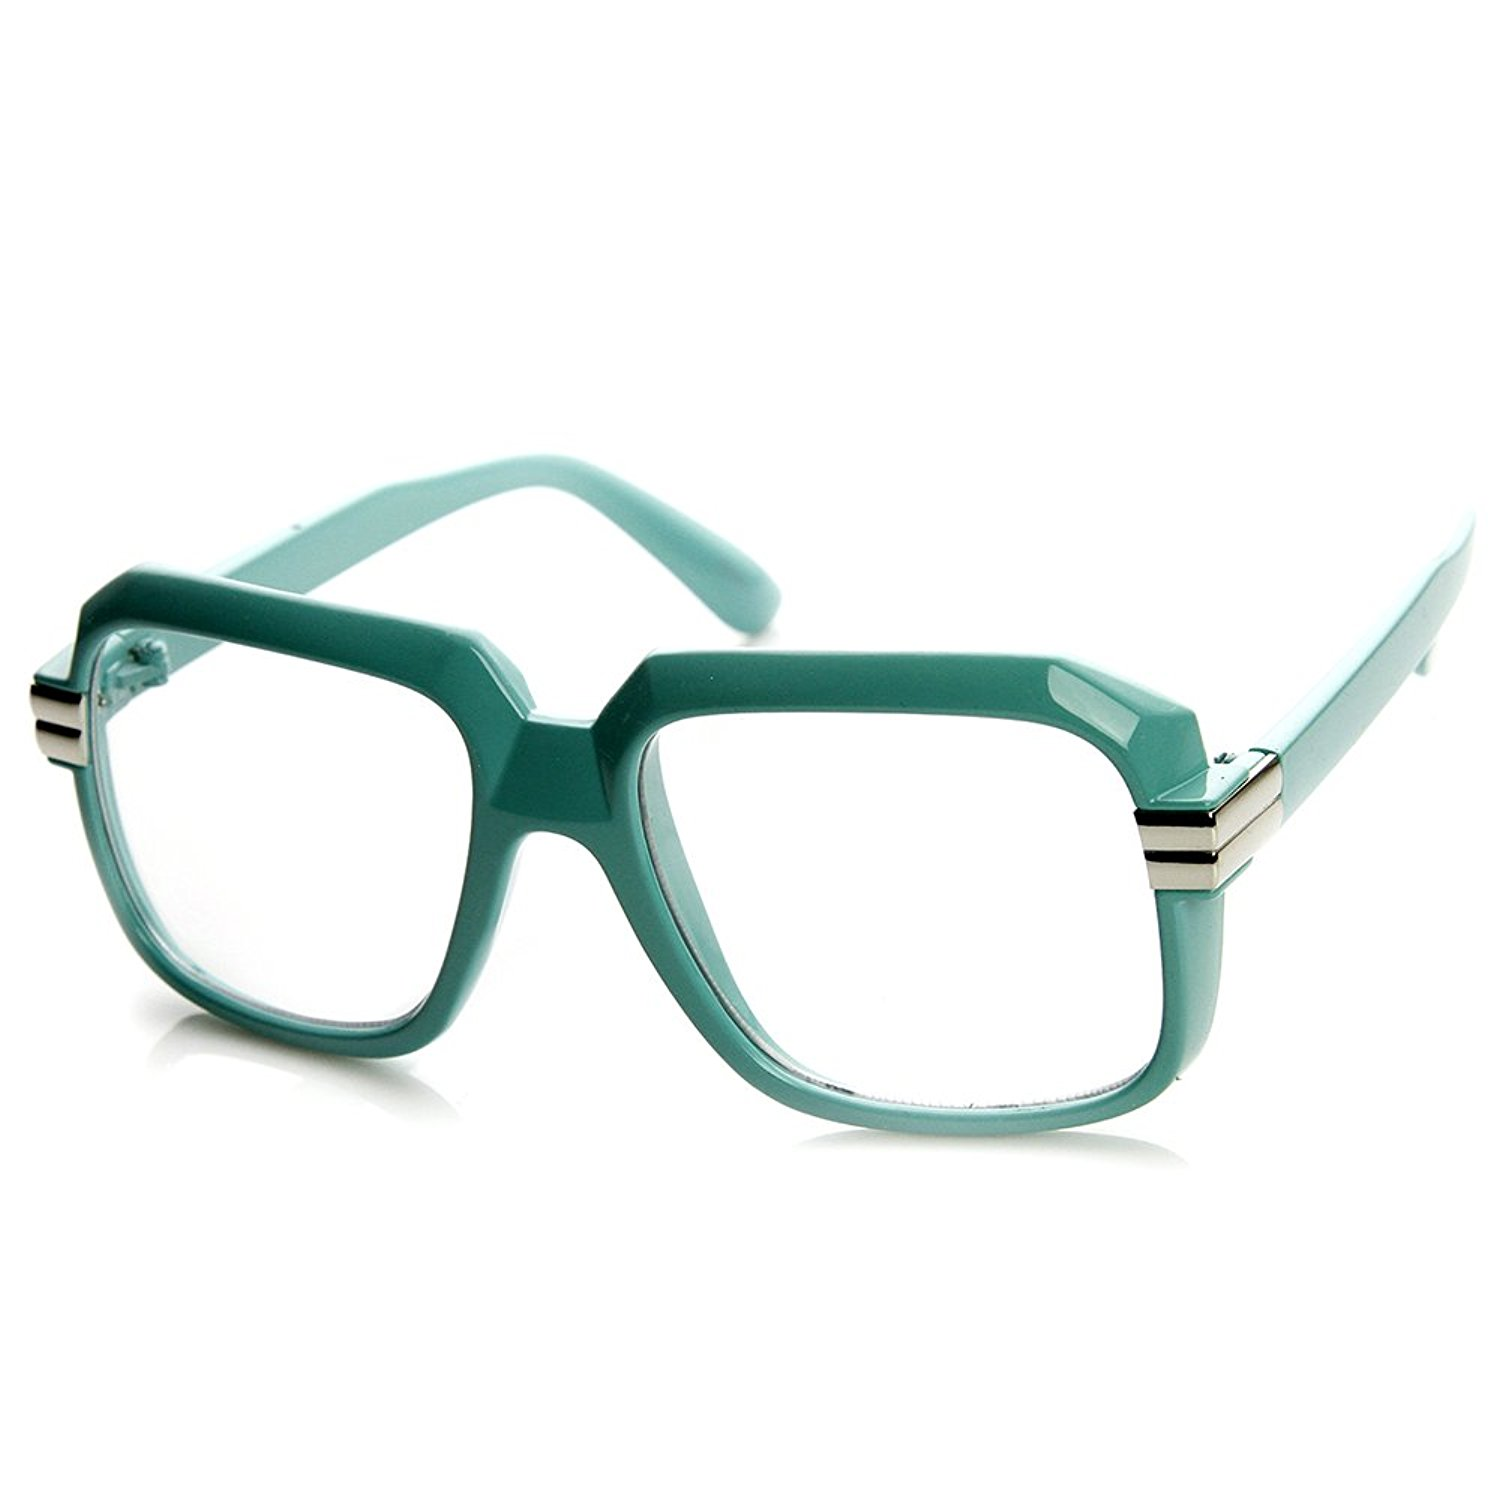 010589ef34 Get Quotations · zeroUV - Colorful Square Frame Plastic Hip Hop Retro Hip-Hop  Glasses